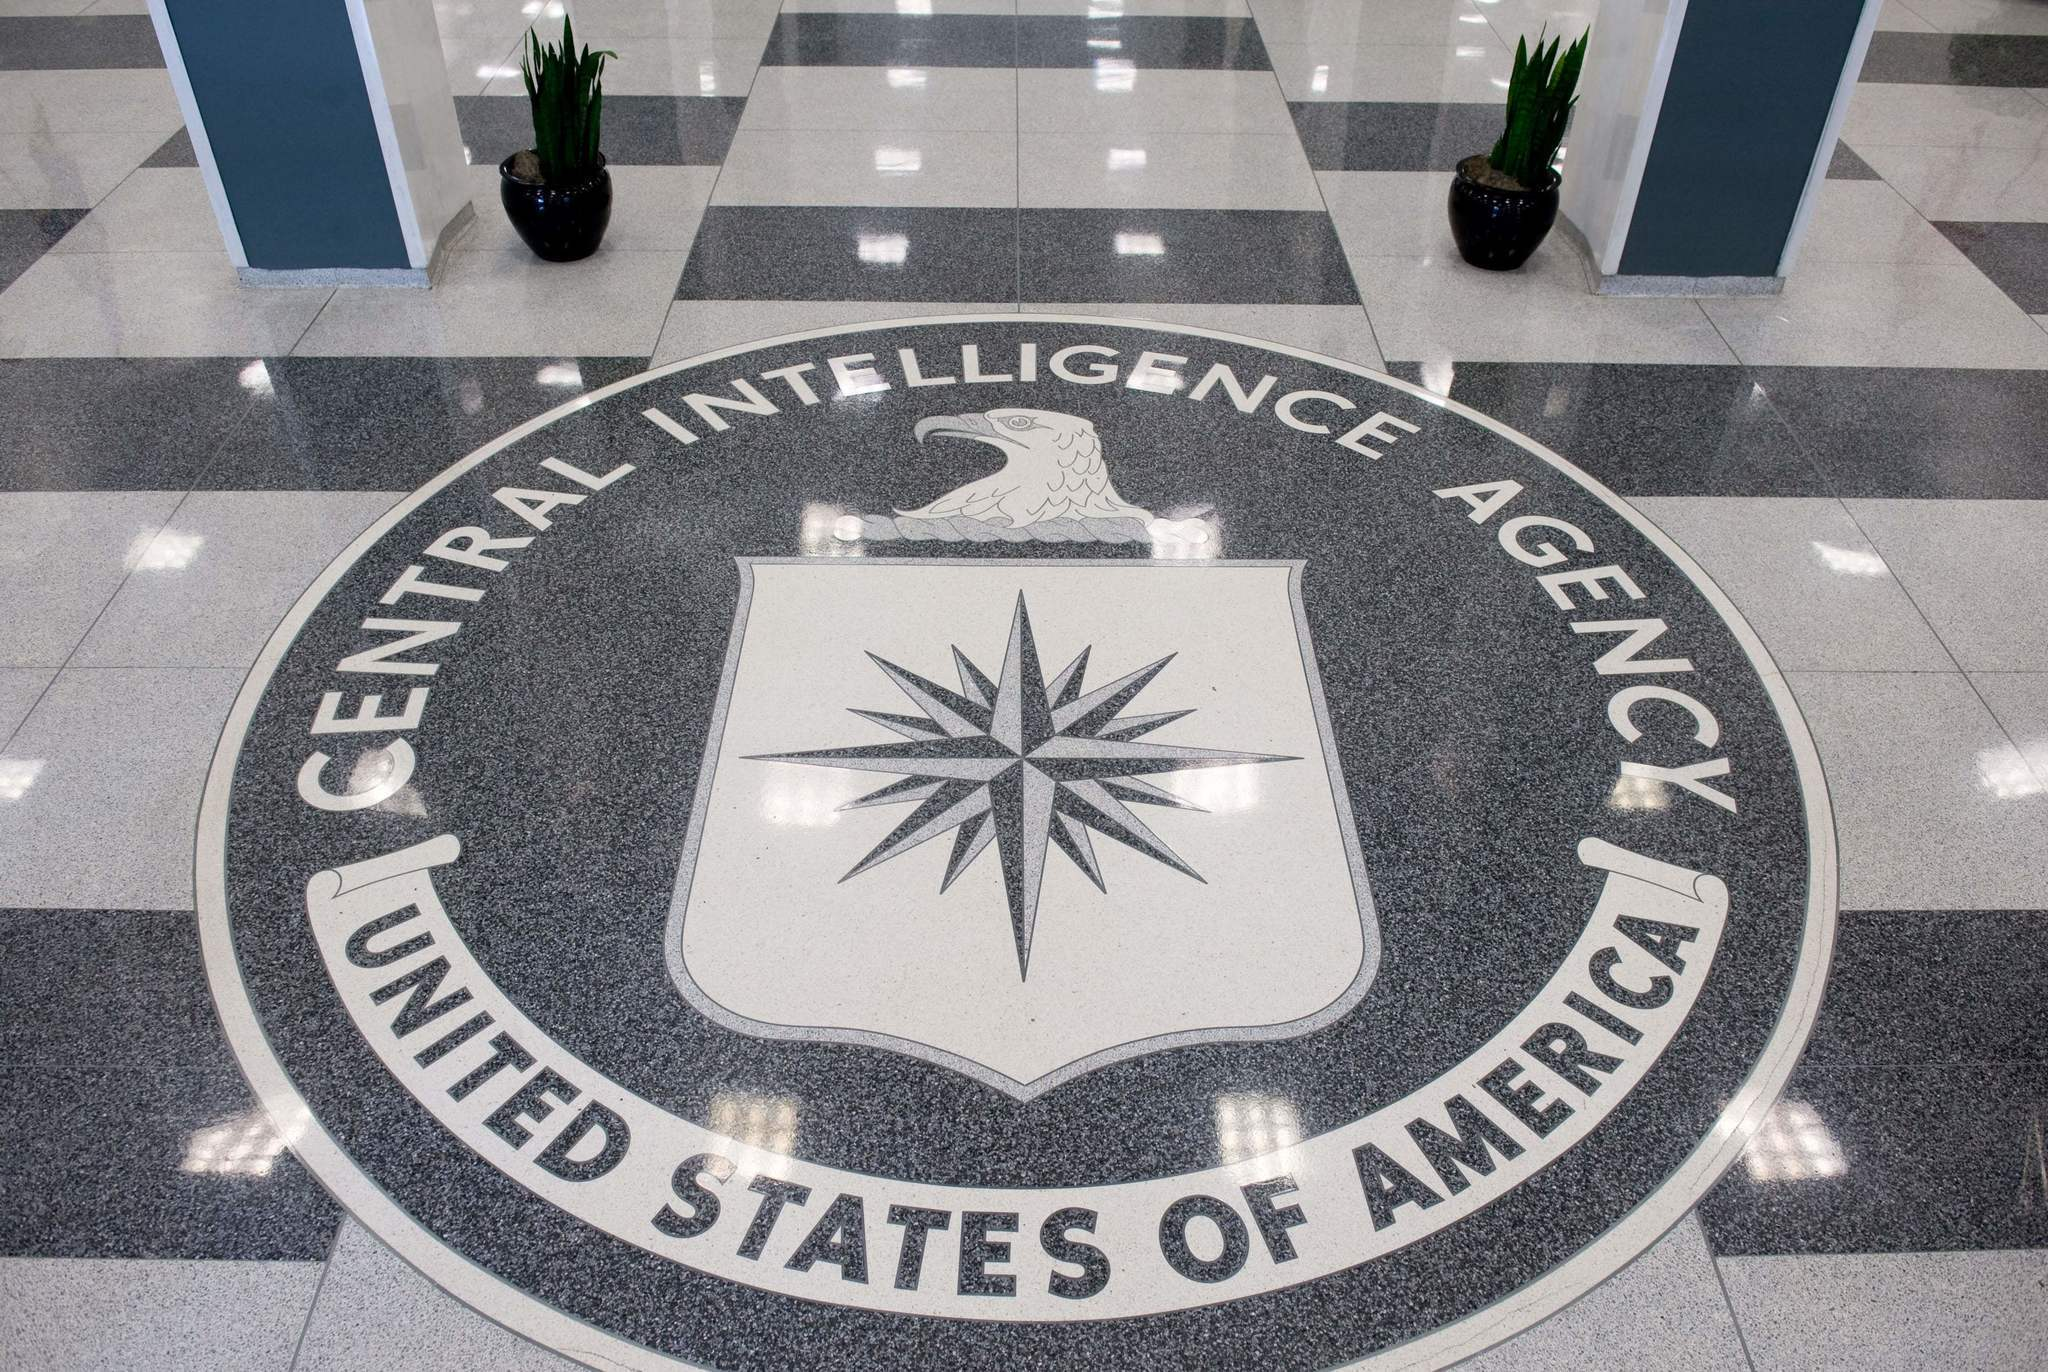 FBI joins CIA in hunt for leaker of sensitive data to WikiLeaks